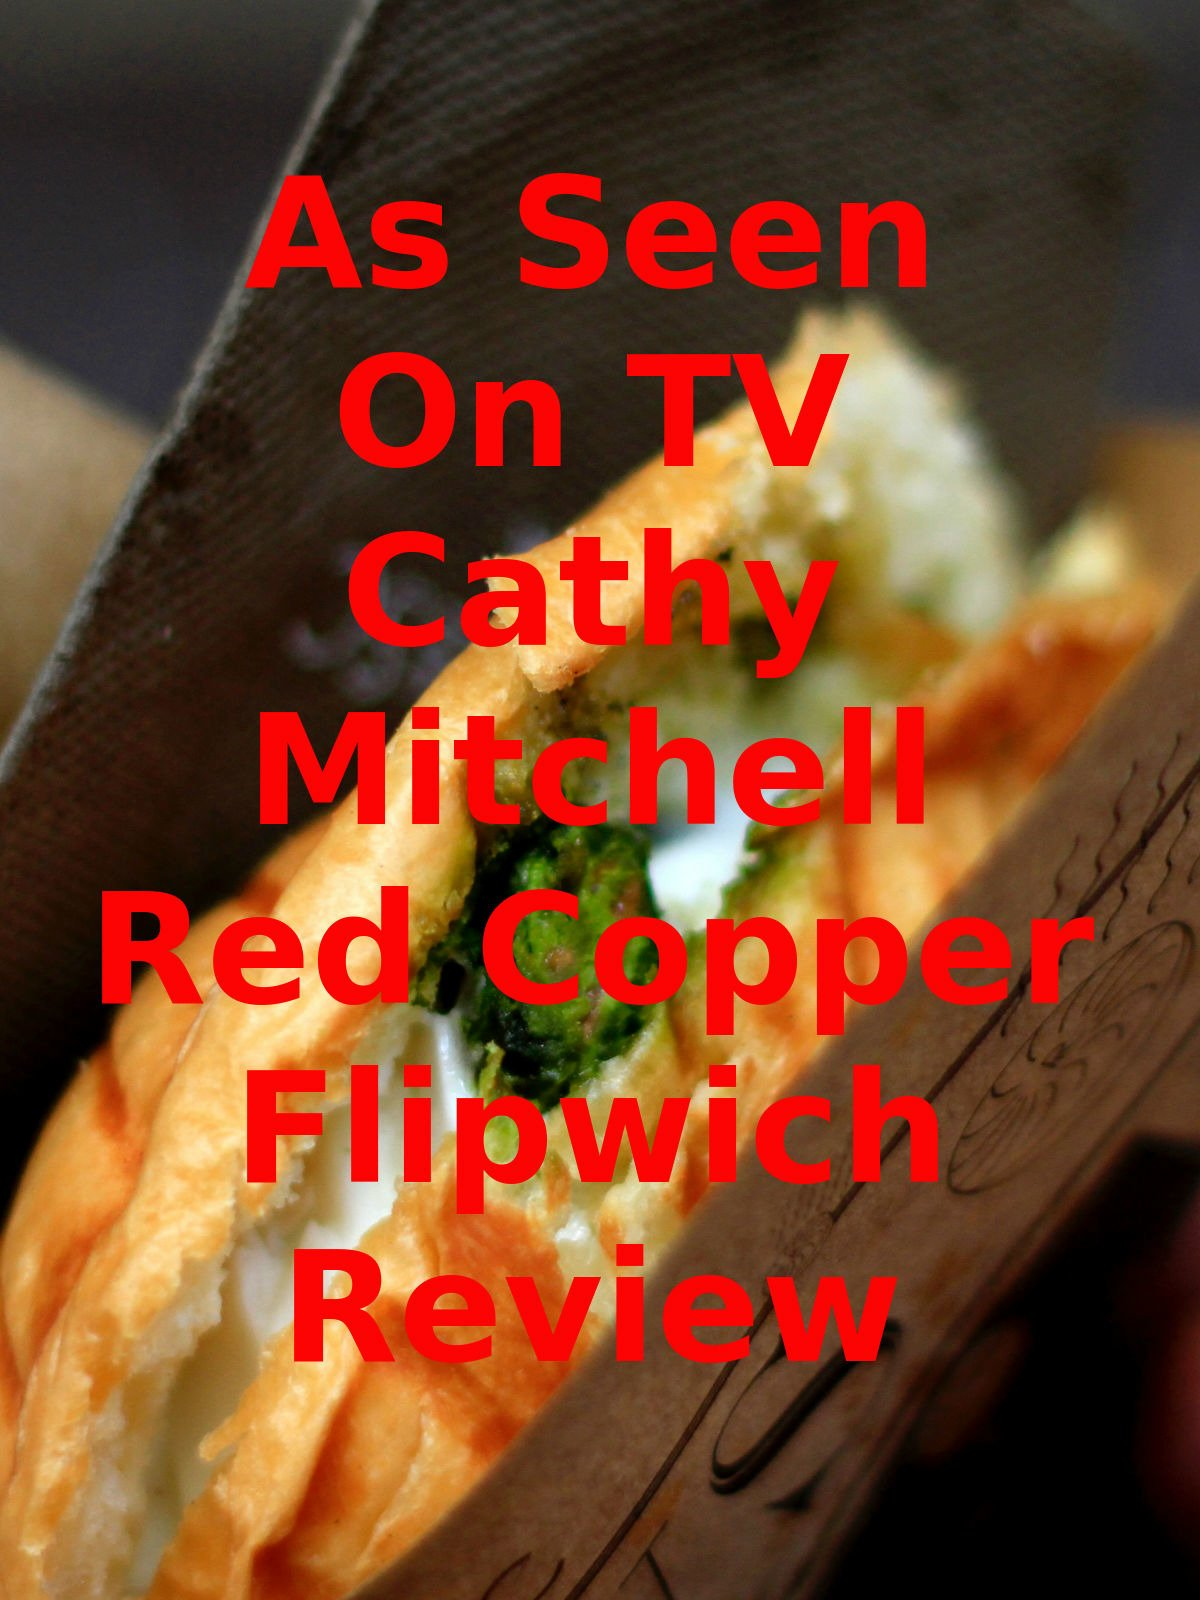 Review: As Seen On TV Cathy Mitchell Red Copper Flipwich Review on Amazon Prime Instant Video UK